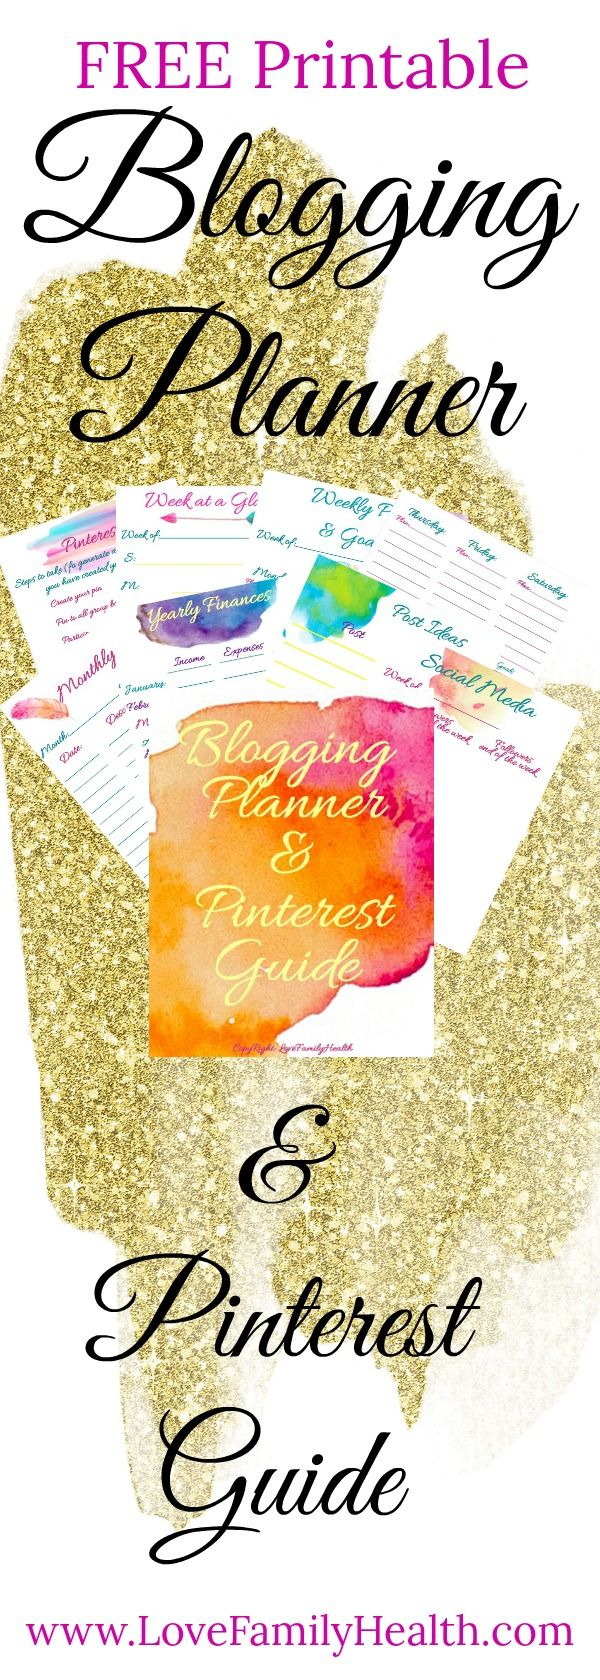 This FREE printable blogging planner with help you keep your blog and business organized! Keeping your blog on track and exploding your traffic!